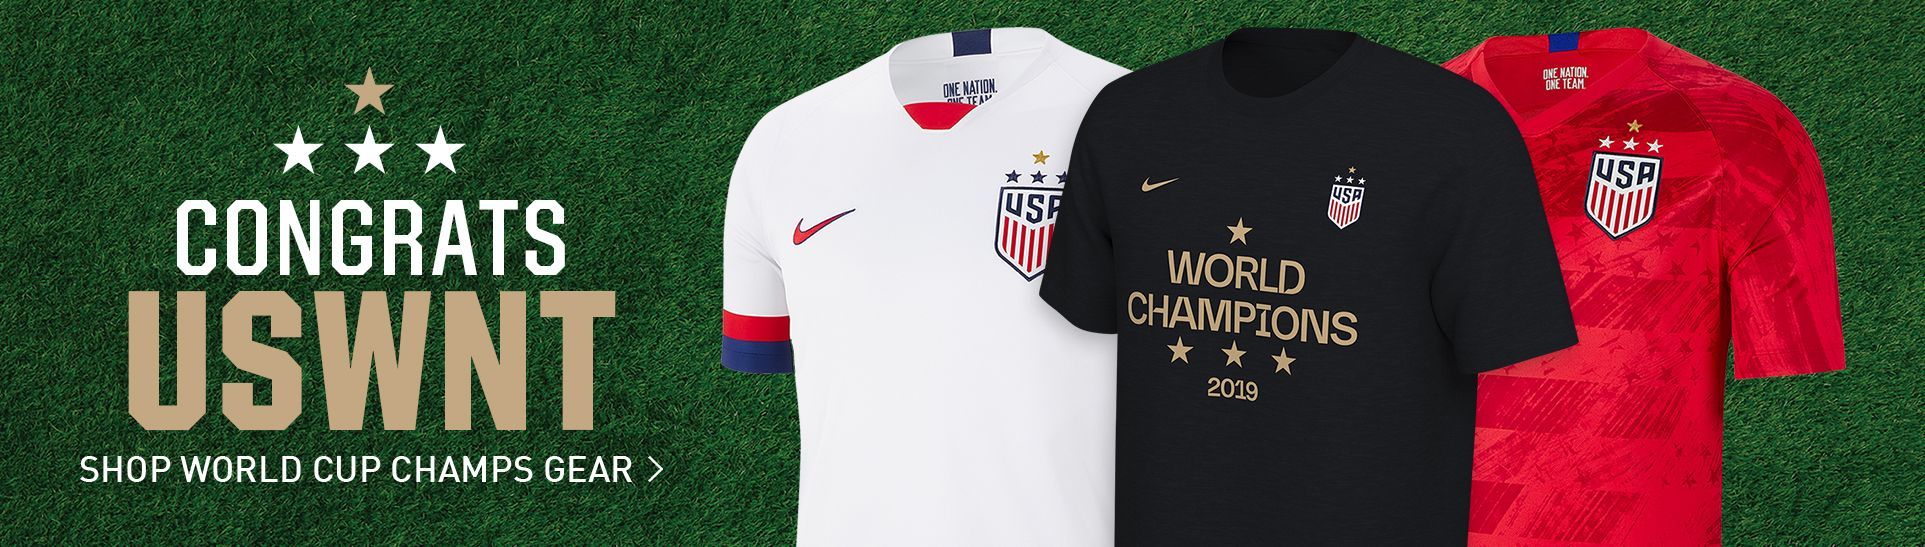 Congrats USWNT - Shop World Cup Champs Gear